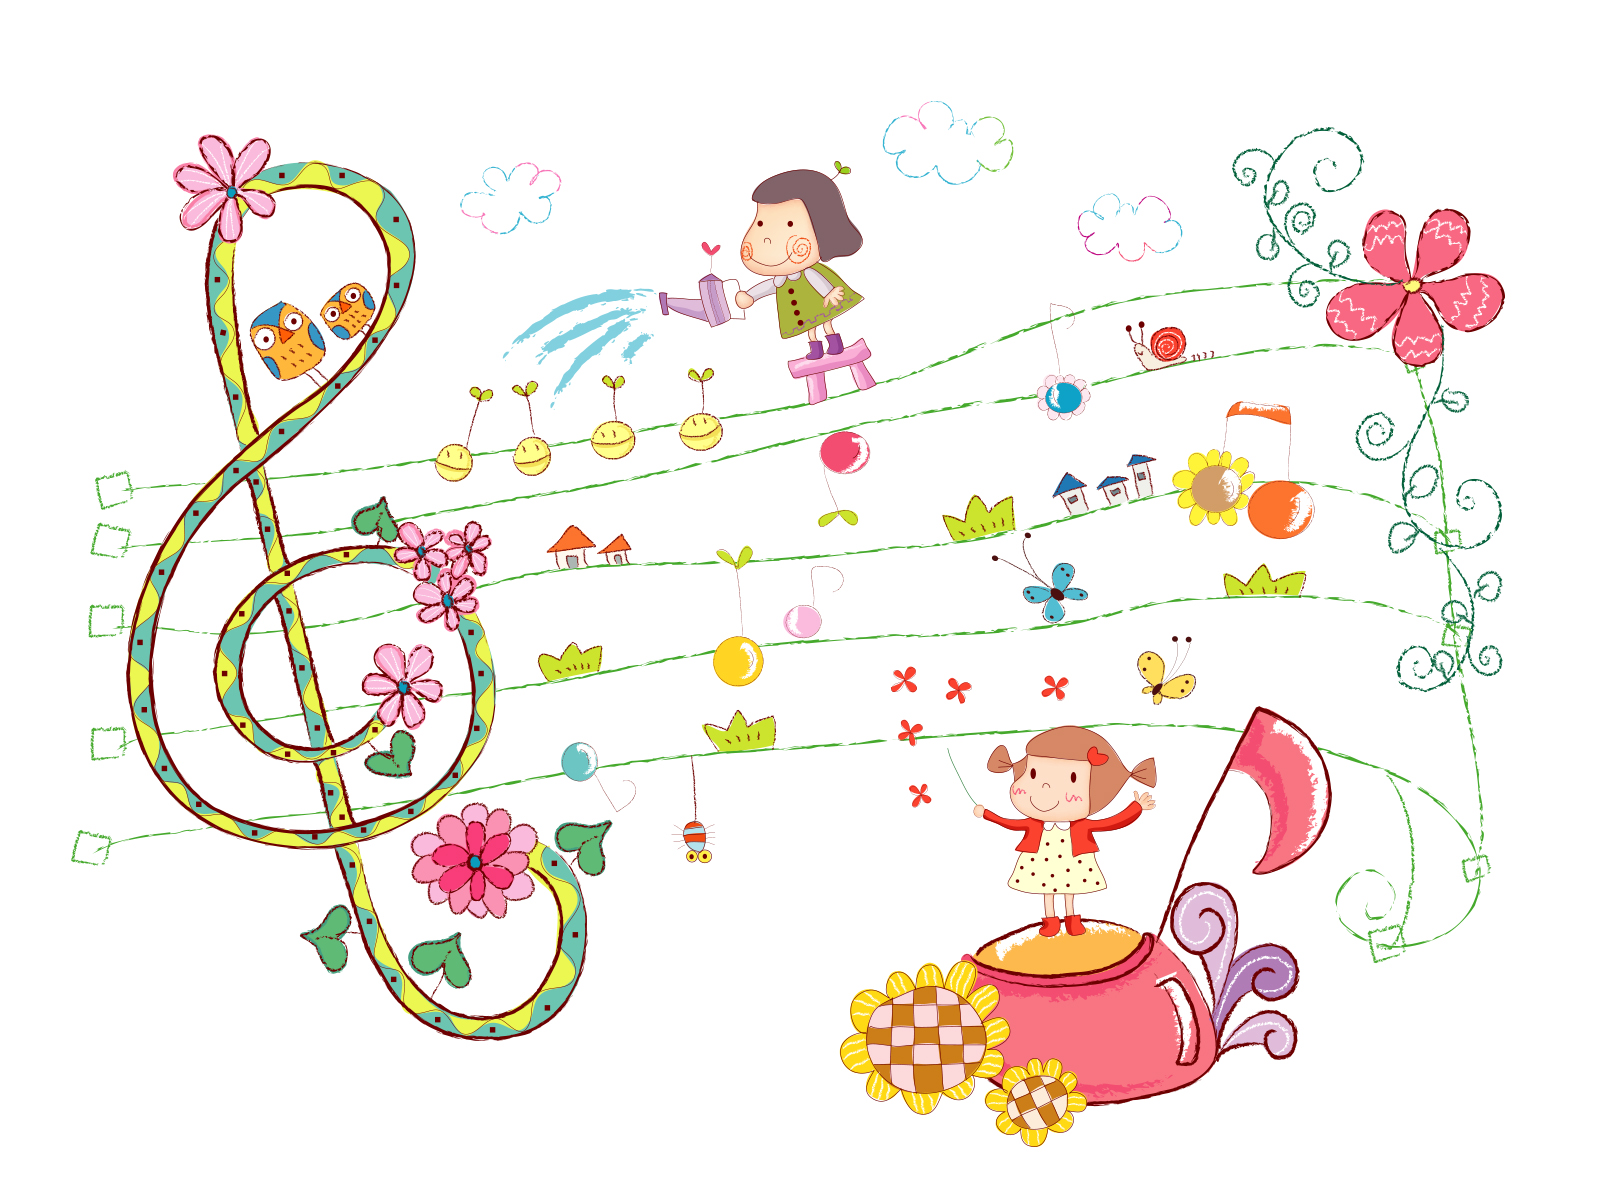 Cute Music Note Wallpaper: Cute Girls And Sheet Music Backgrounds